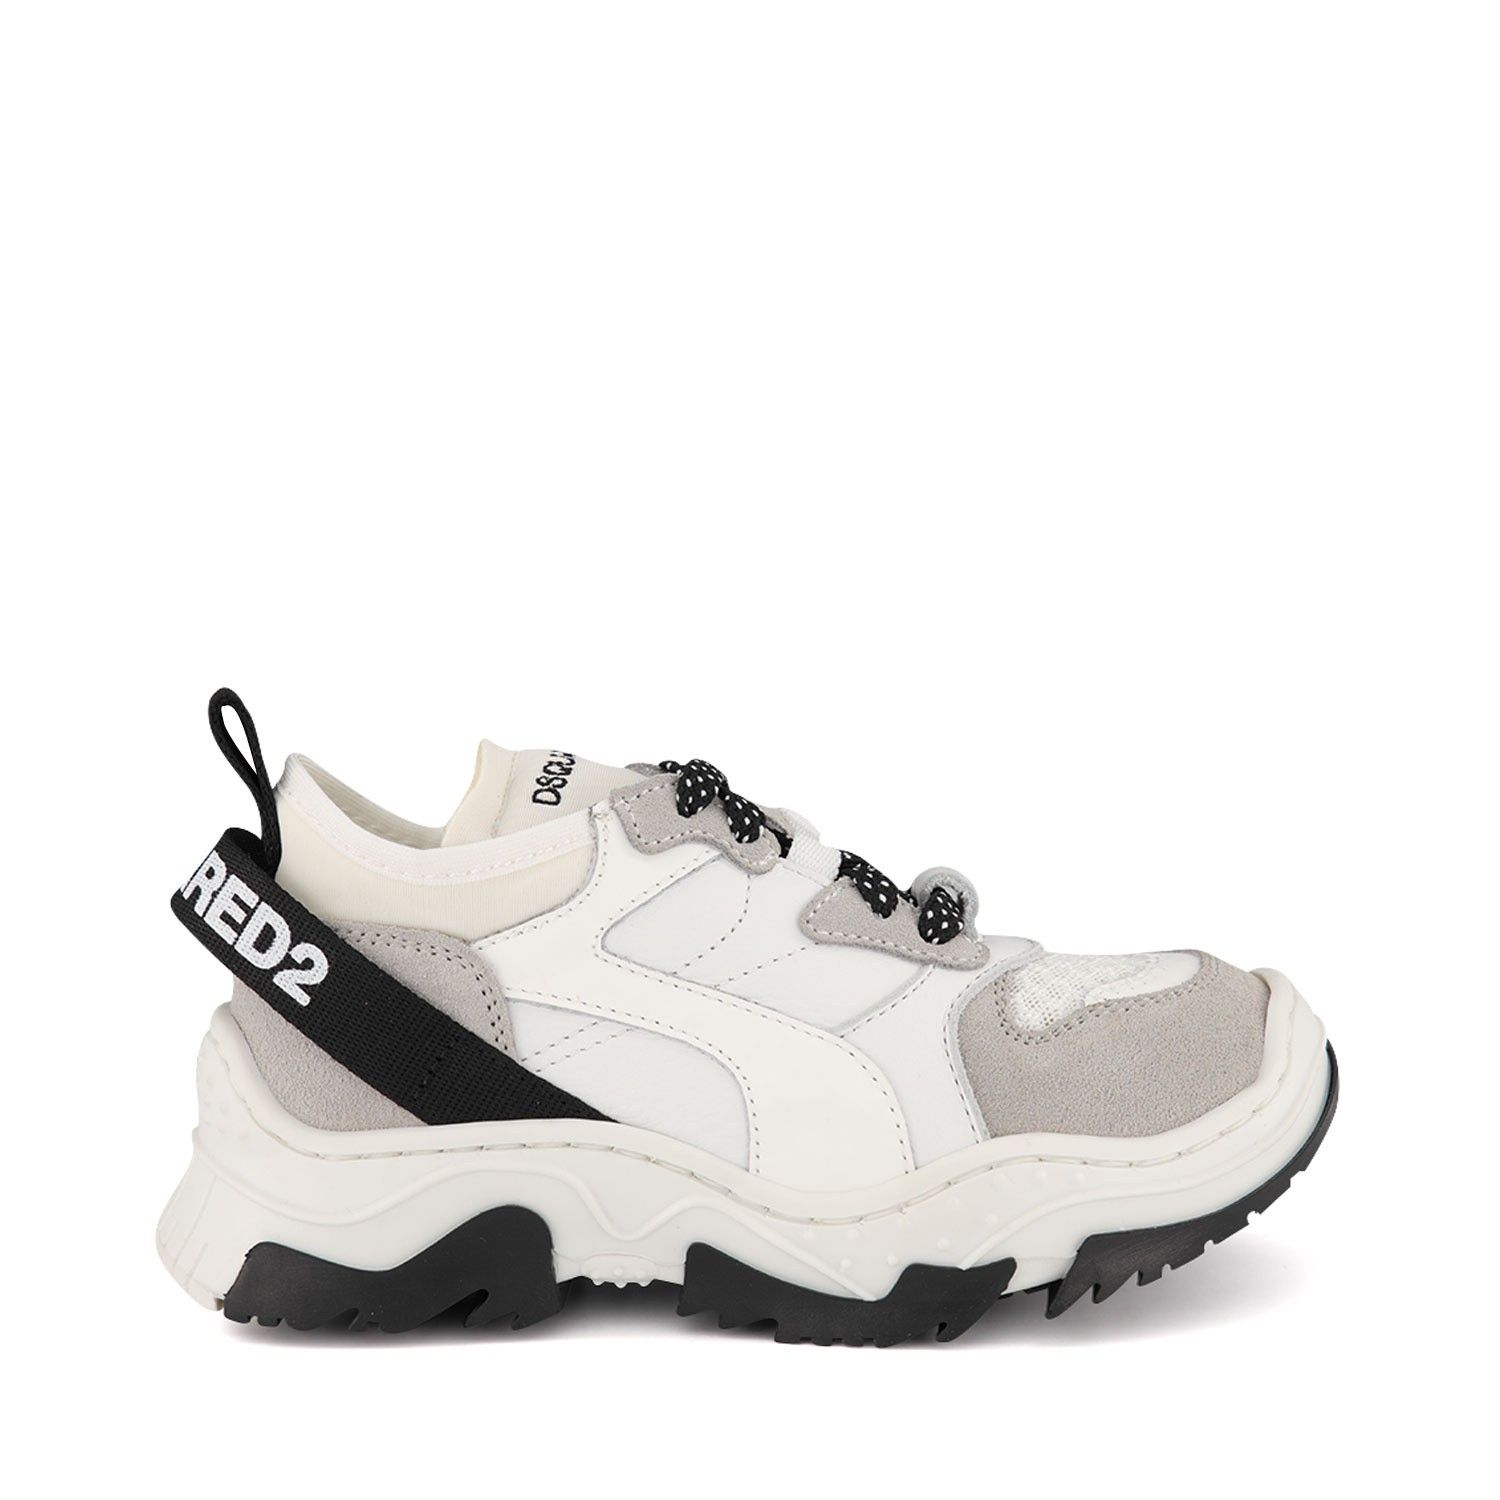 Picture of Dsquared2 63467 kids sneakers white